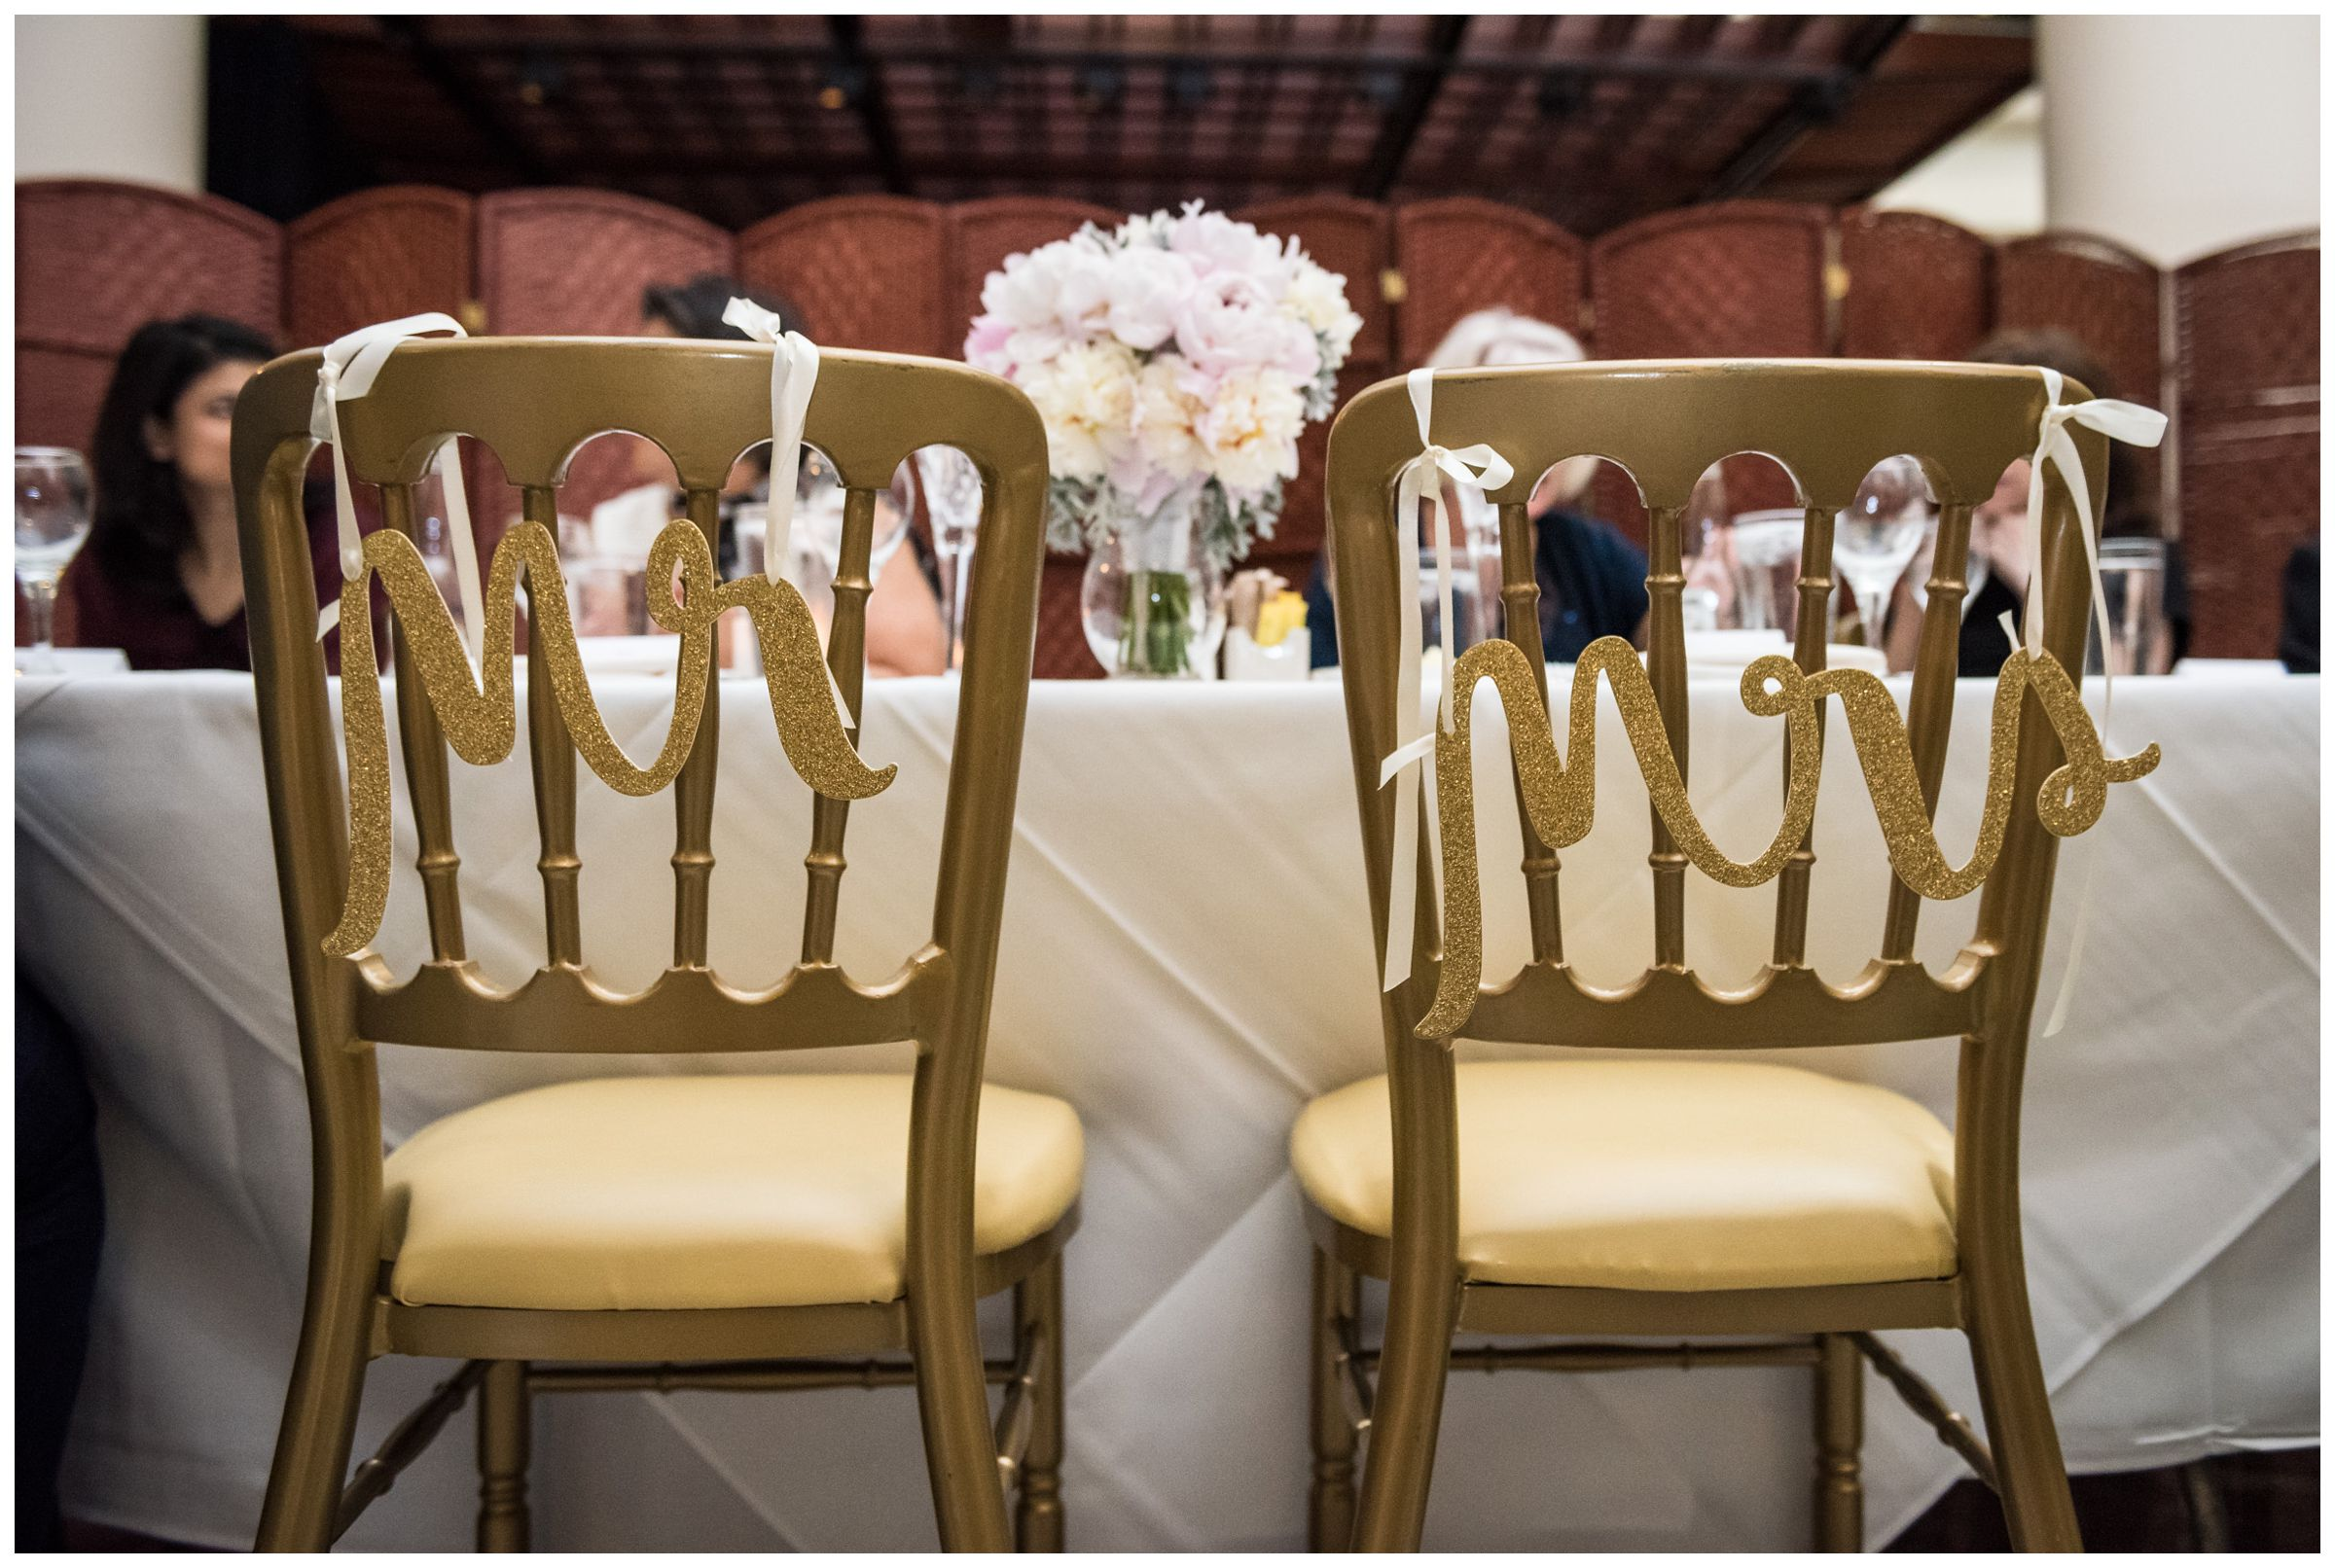 Mr. and Mrs. signs on bride and groom's chairs during intimate wedding reception dinner at Old Ebbitt Grill in Washington, D.C.